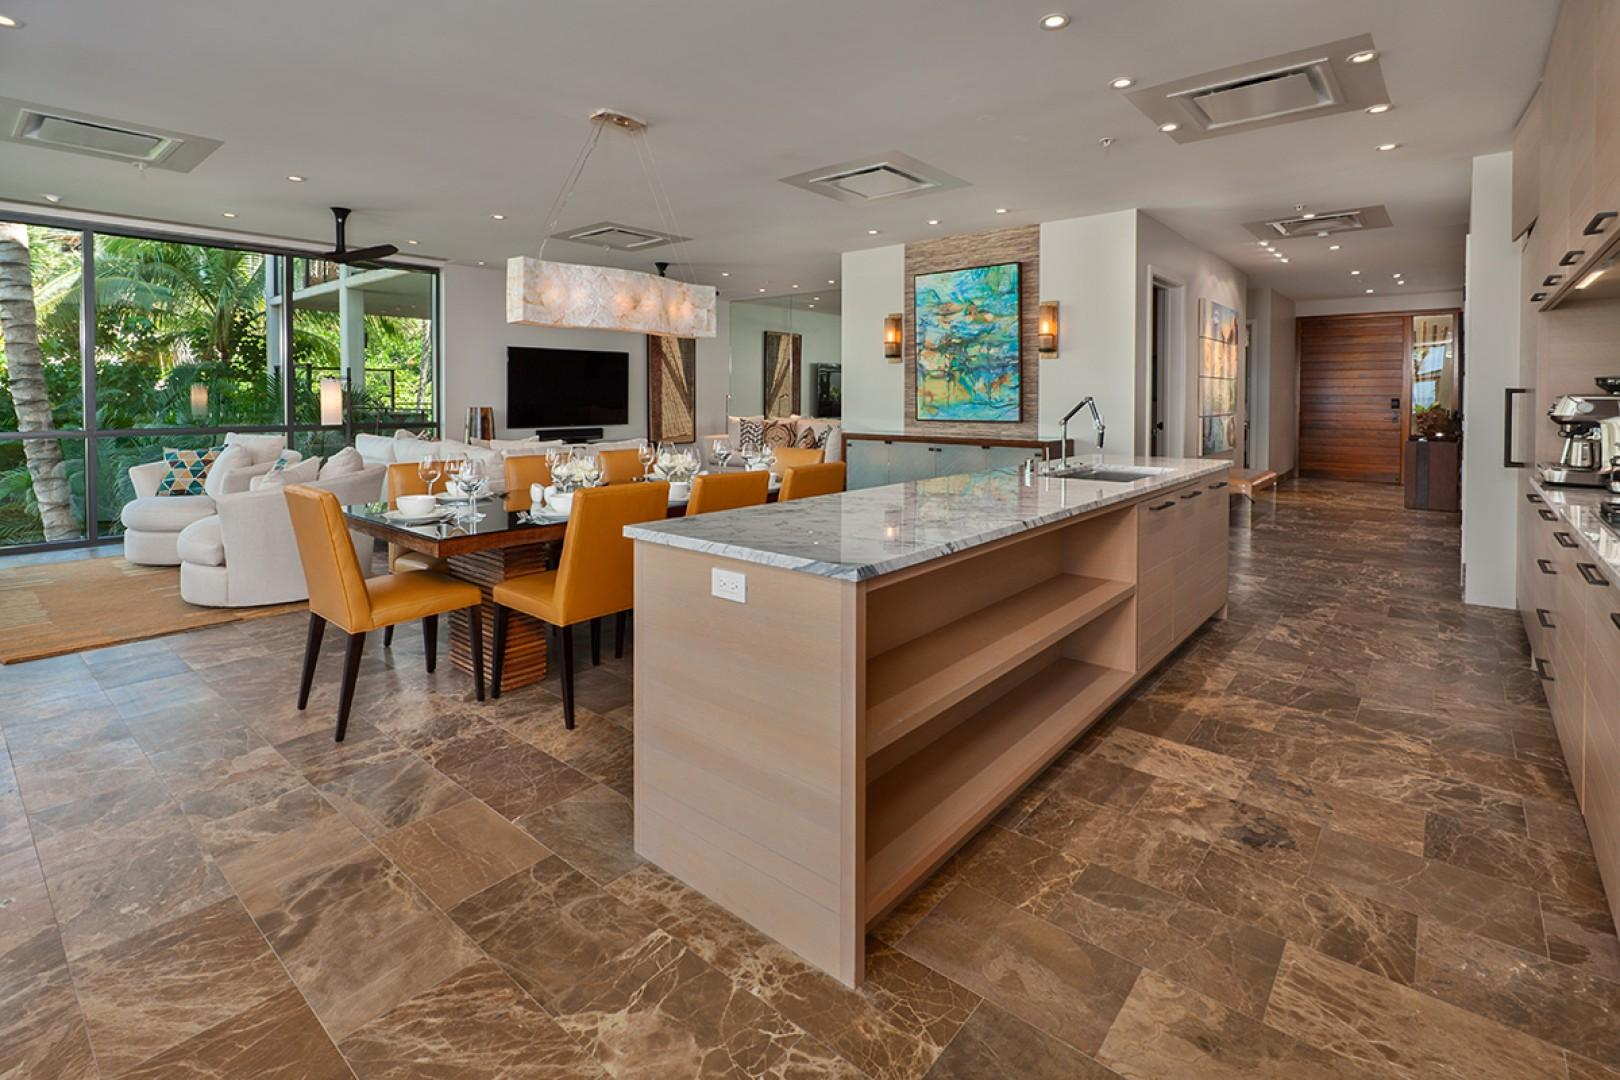 Create Maui Inspired Culinary Masterpieces in the Meile Equipped Gourmet Kitchen